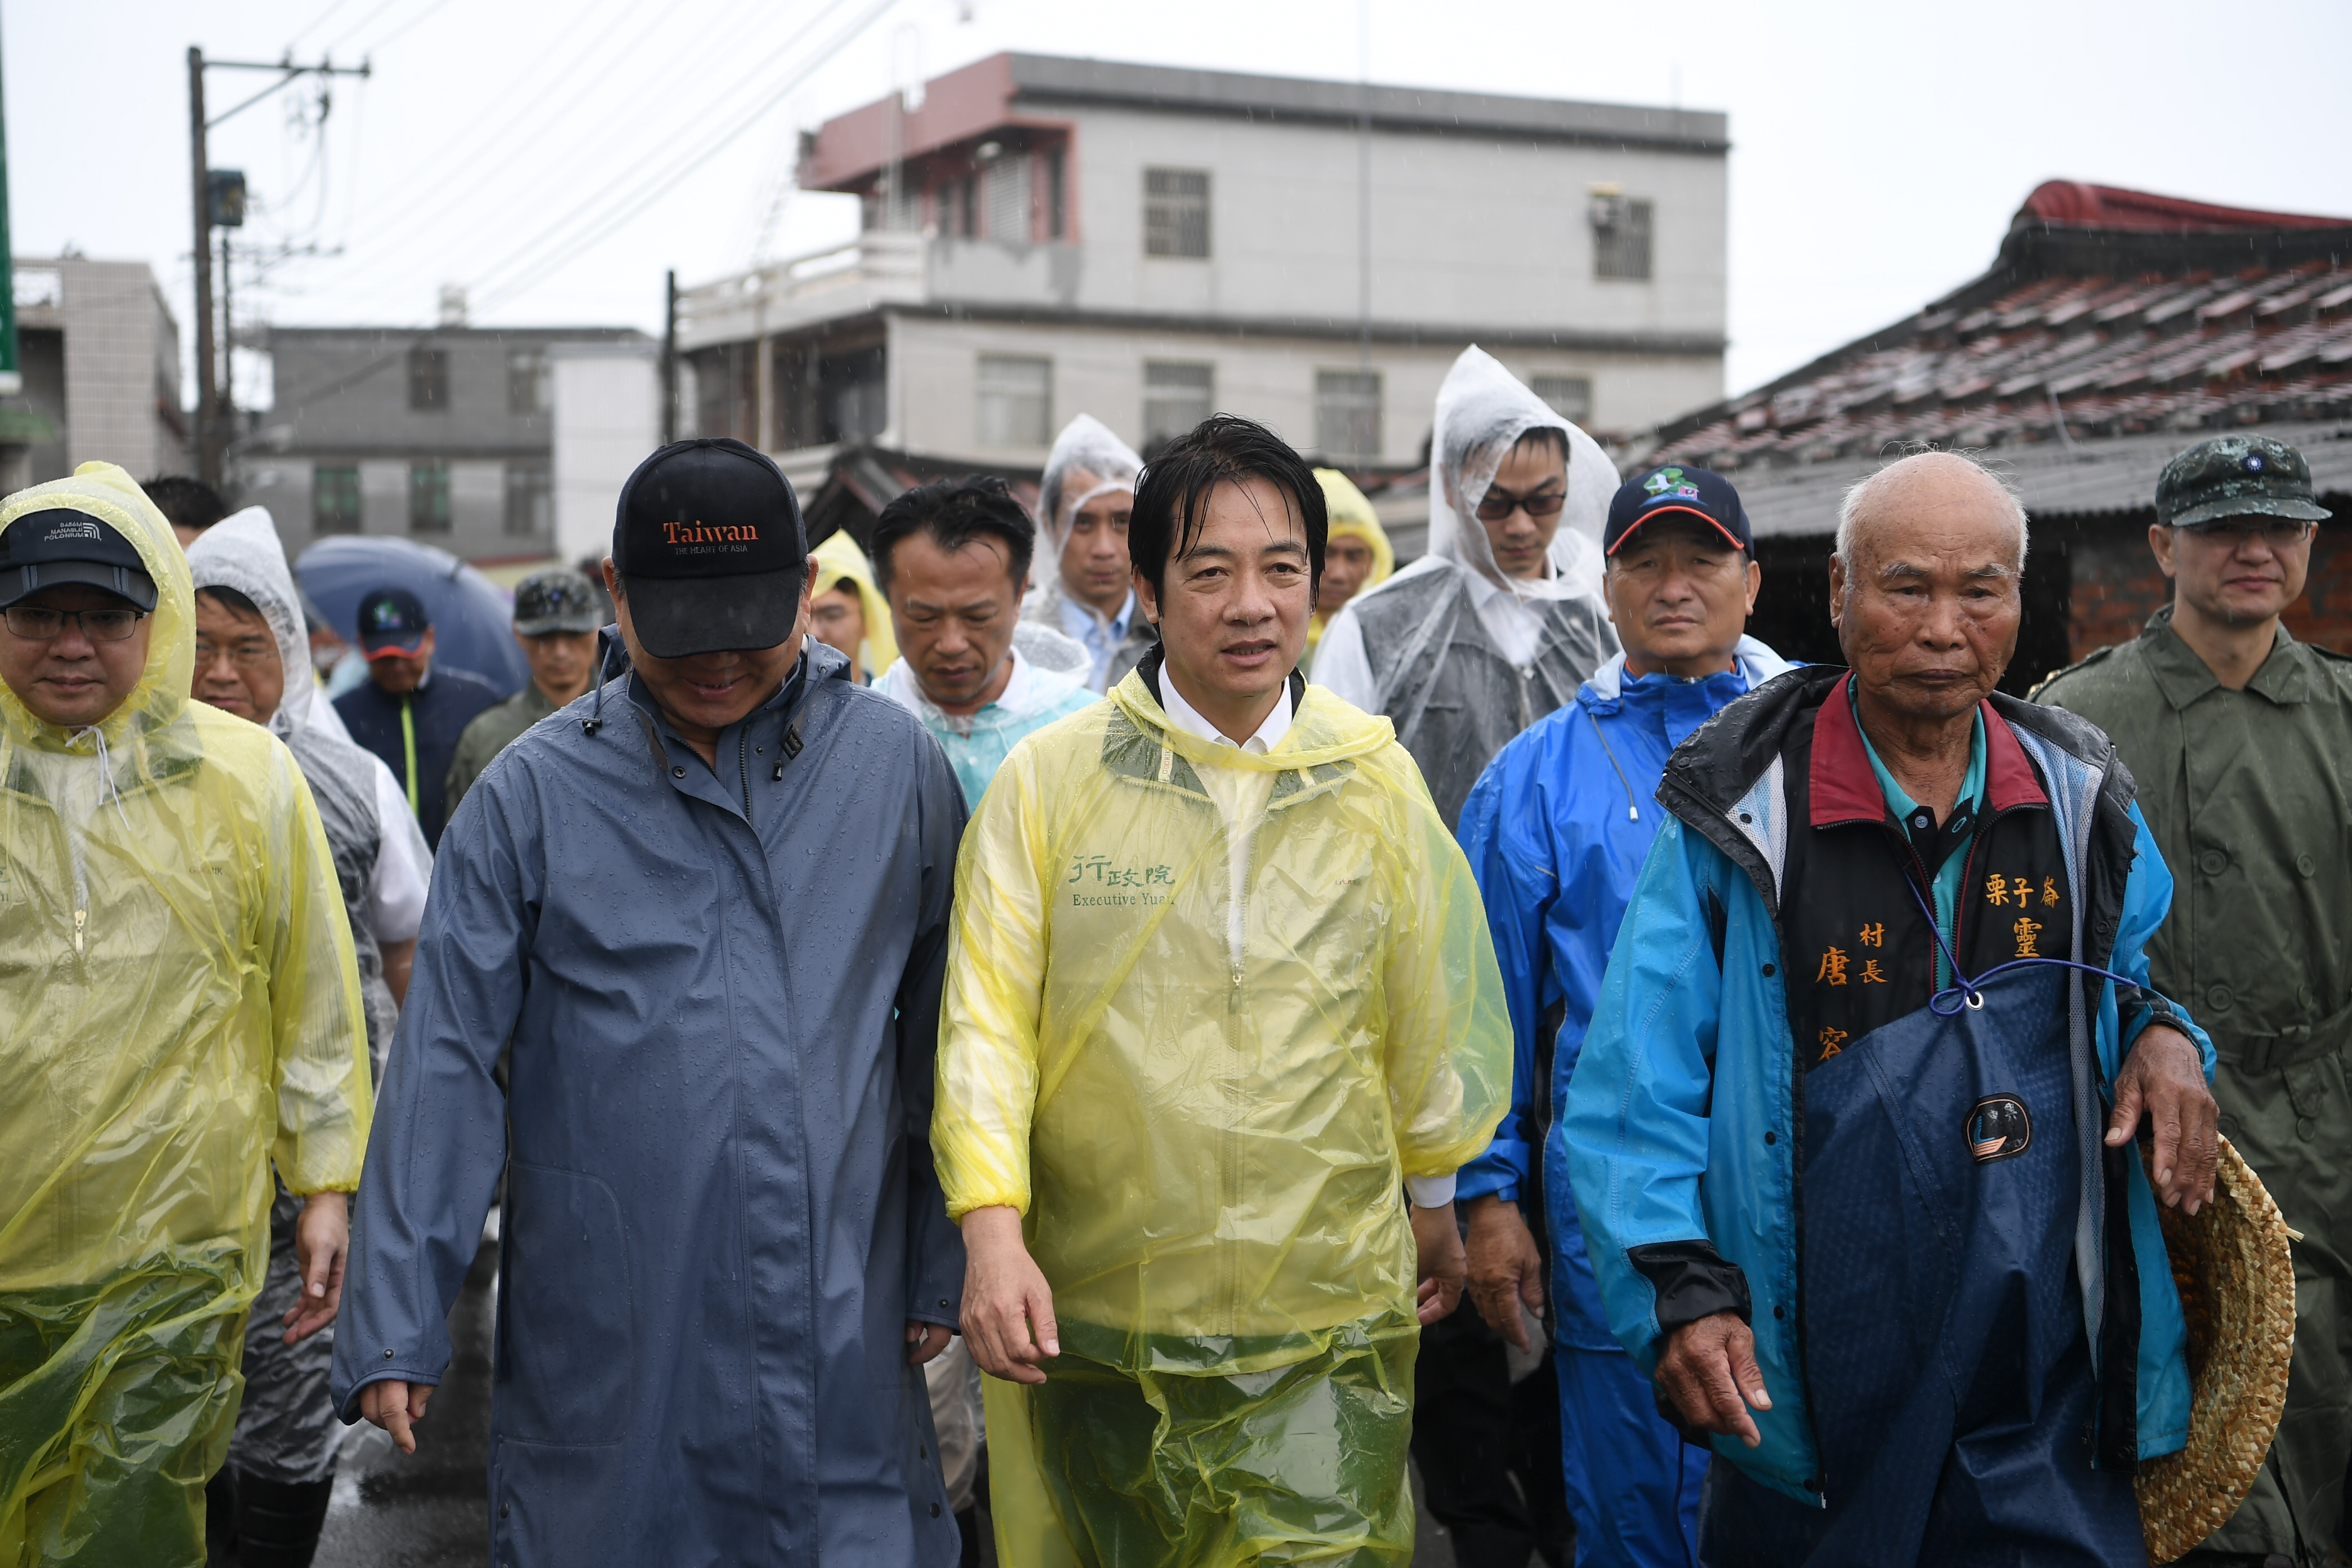 Premier Lai inspects aftermath of flooding in Chiayi County